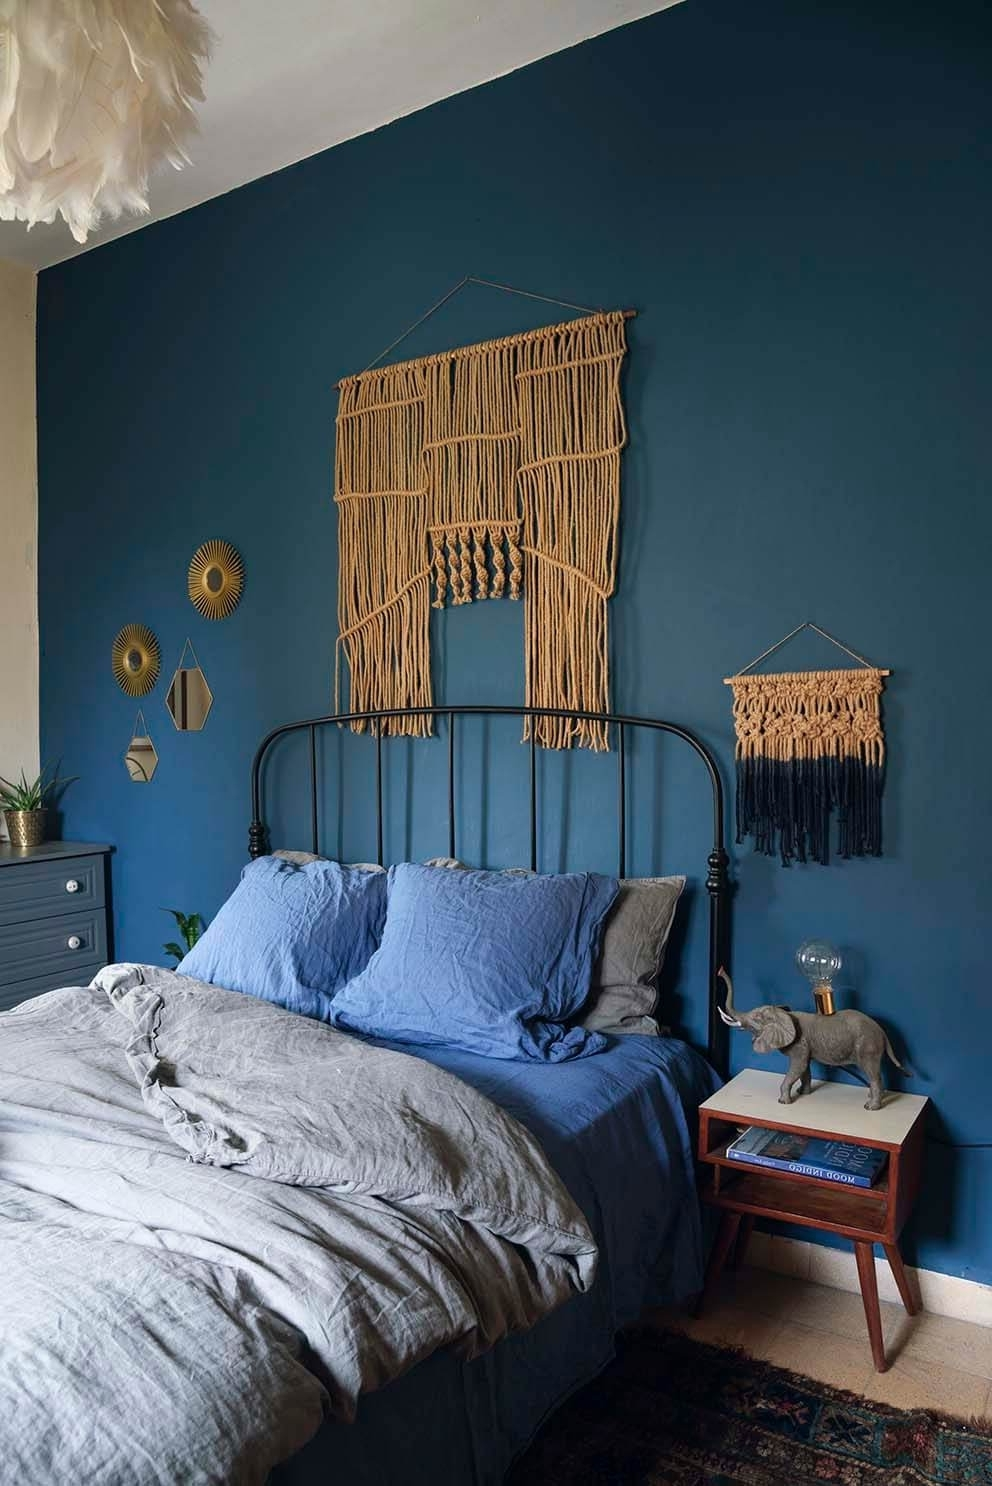 2017 Wall Accents For Blue Room Intended For This Is How To Decorate With Blue Walls (Gallery 5 of 15)